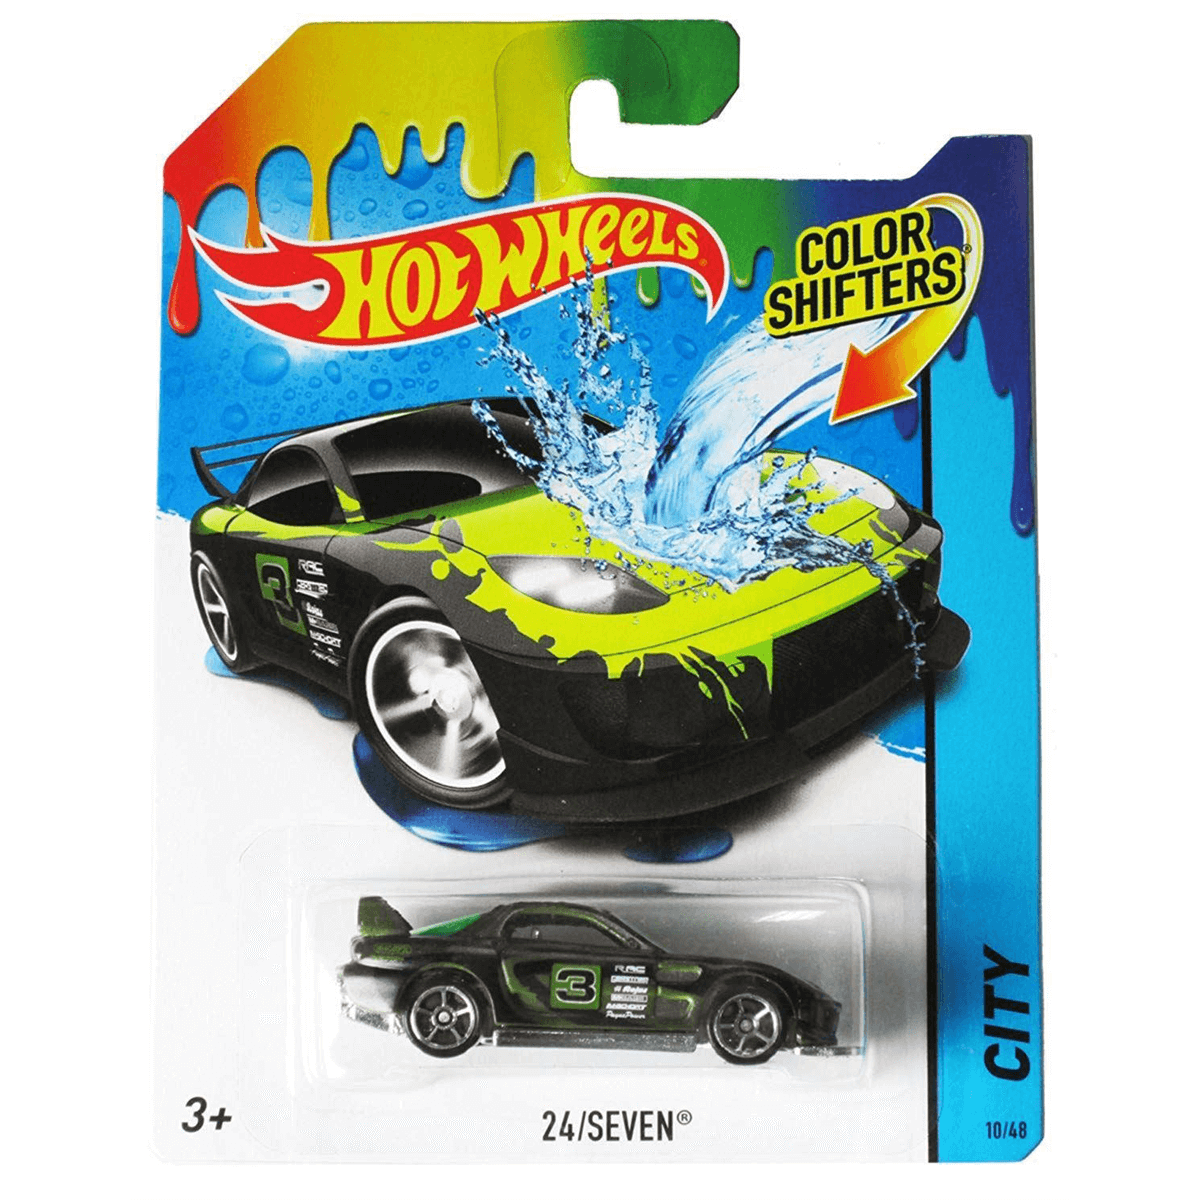 Hot Wheels Colour Shifters 24 Seven The Entertainer